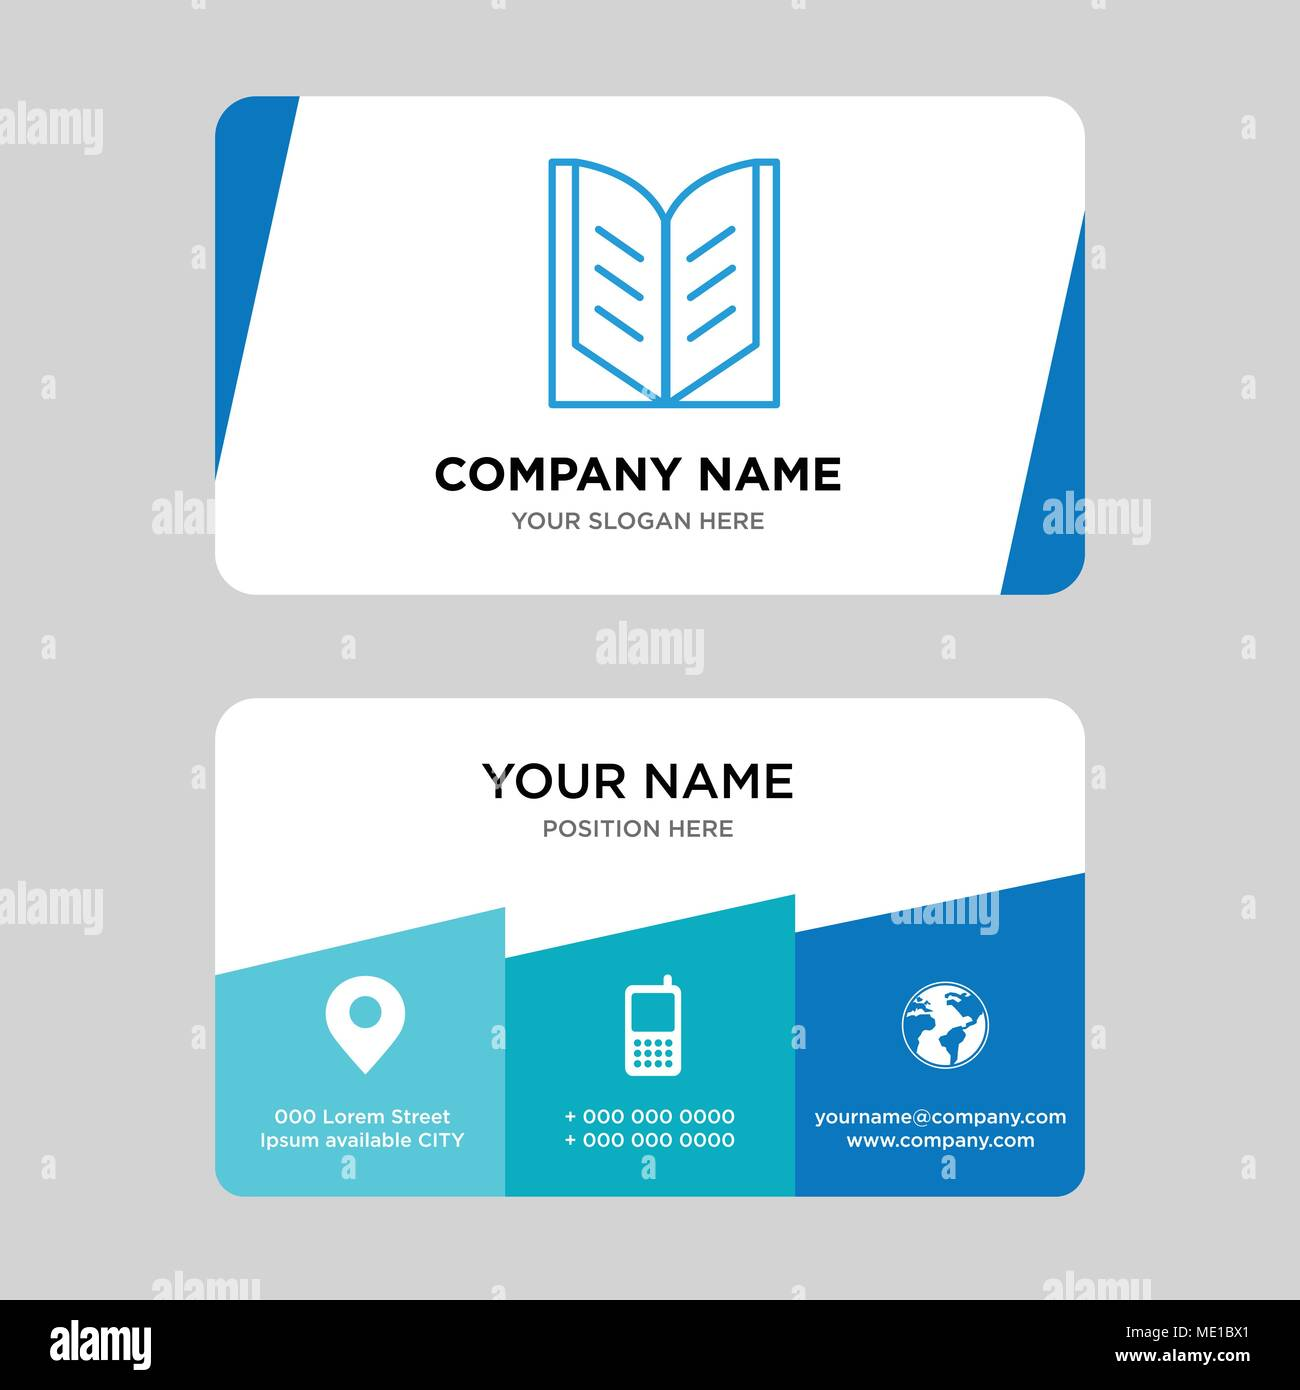 Open book business card design template, Visiting for your company ...